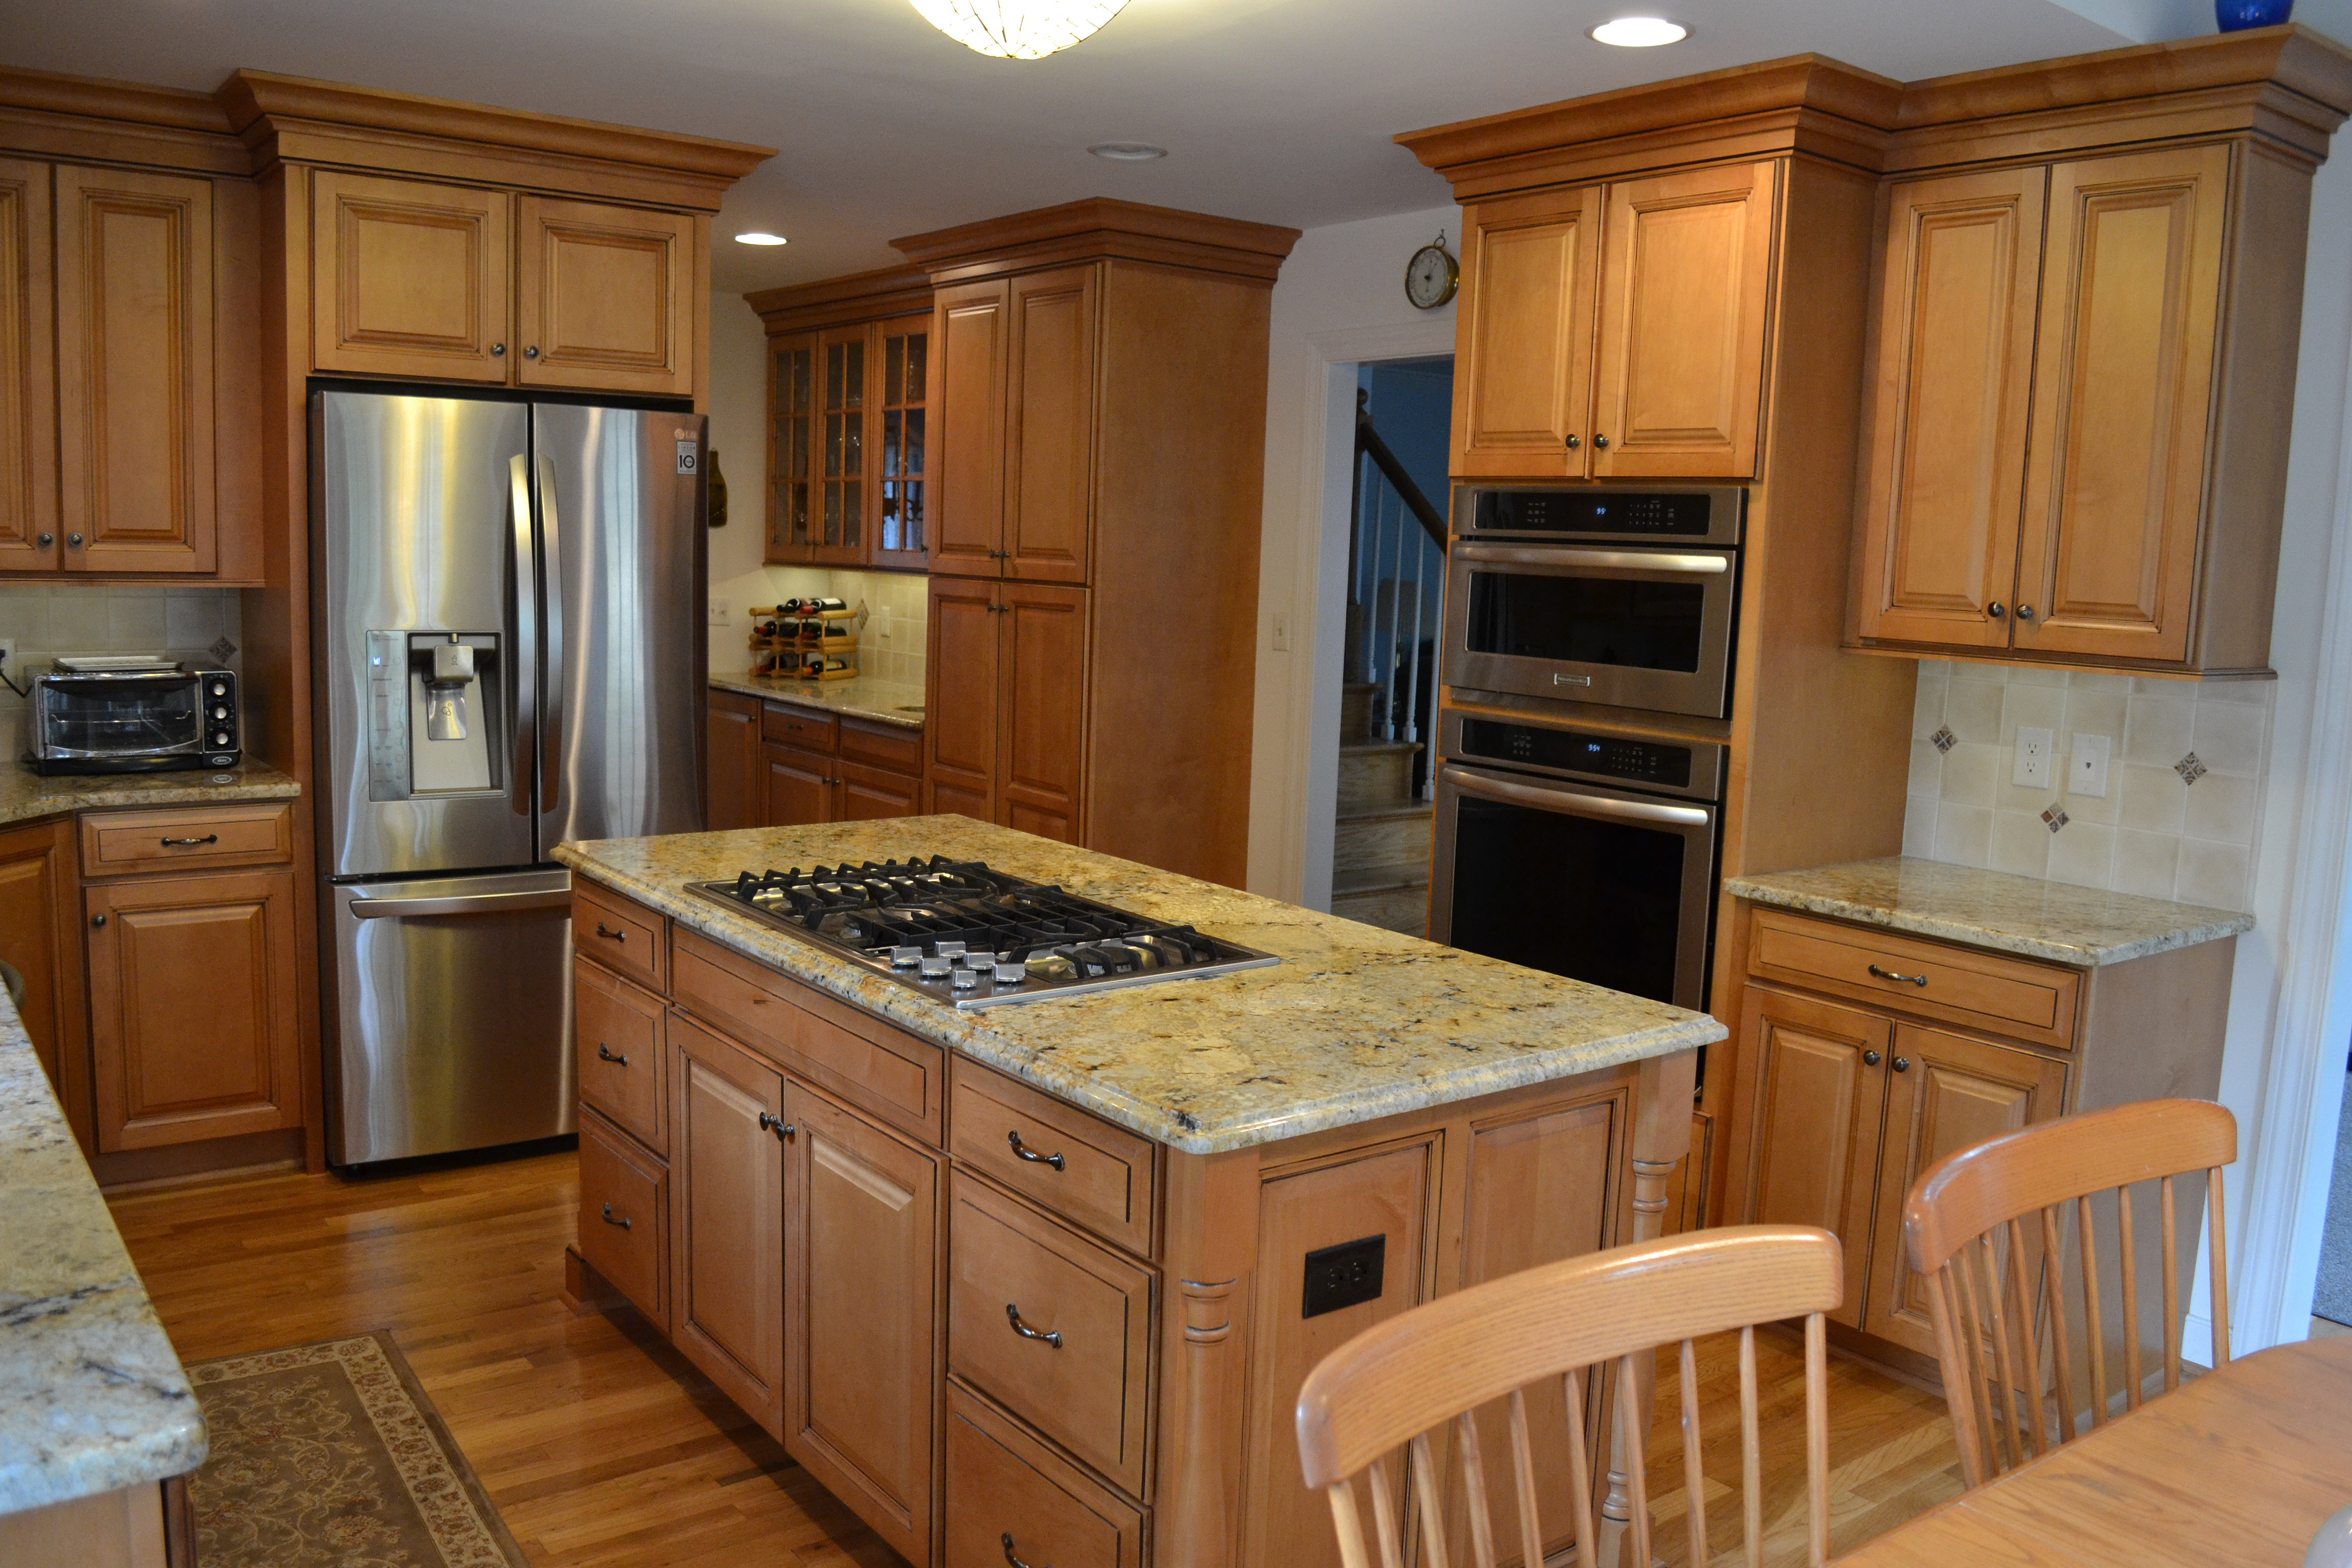 Kitchen Remodel Richmond Va Designing Richmond Rva Kitchen Design Cabinetry And Remodeling